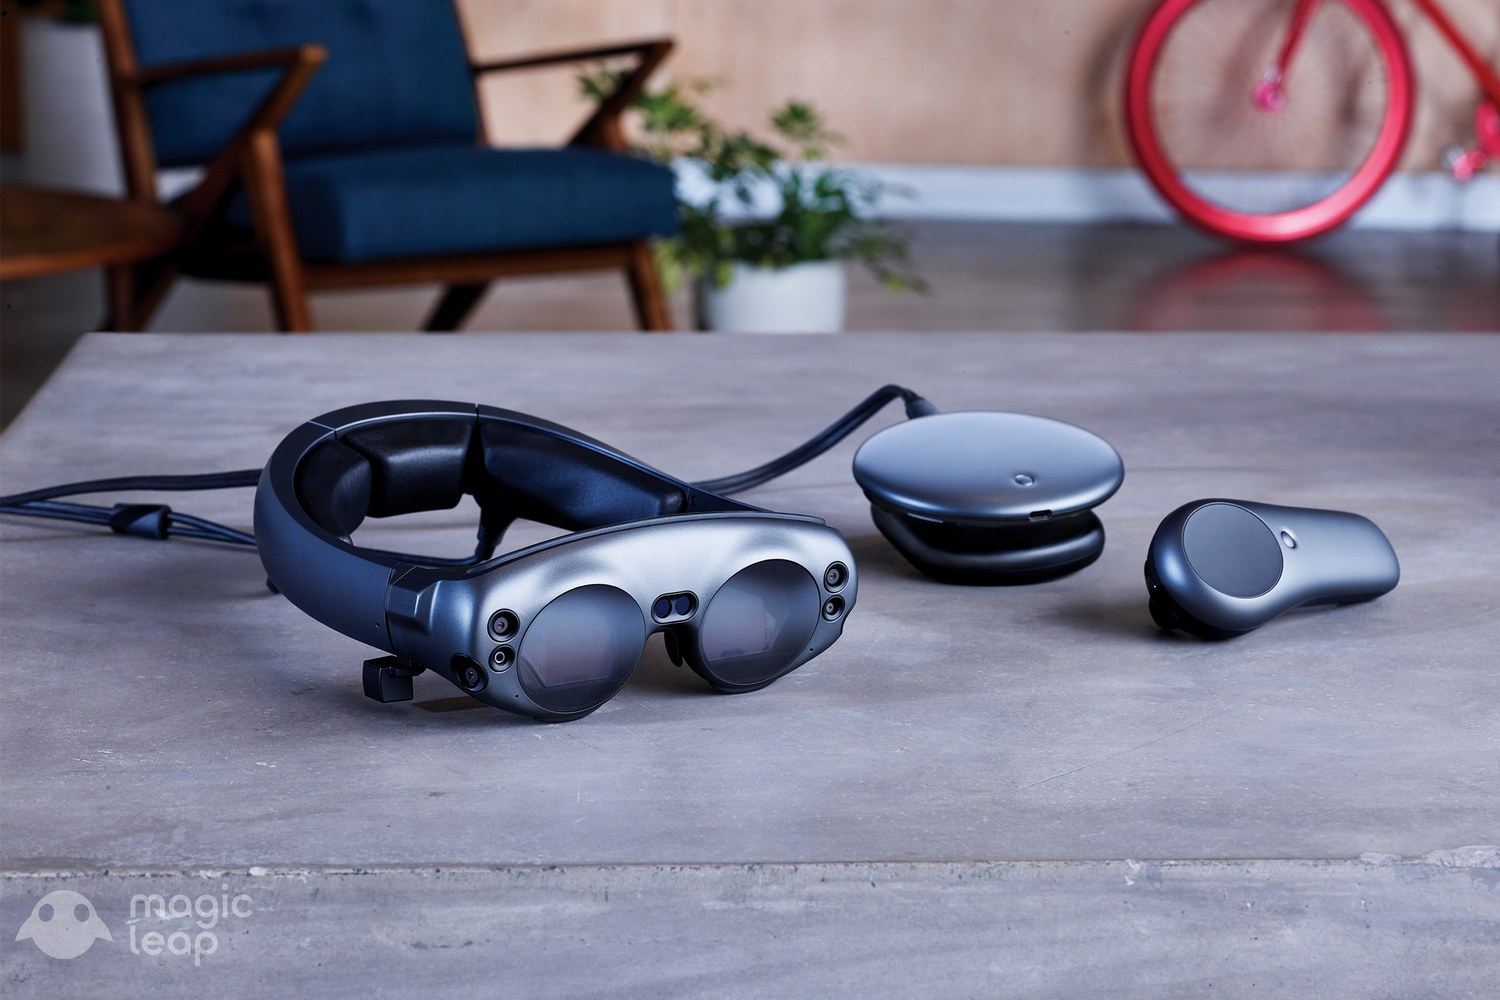 Magic Leap's early device sales aren't looking good